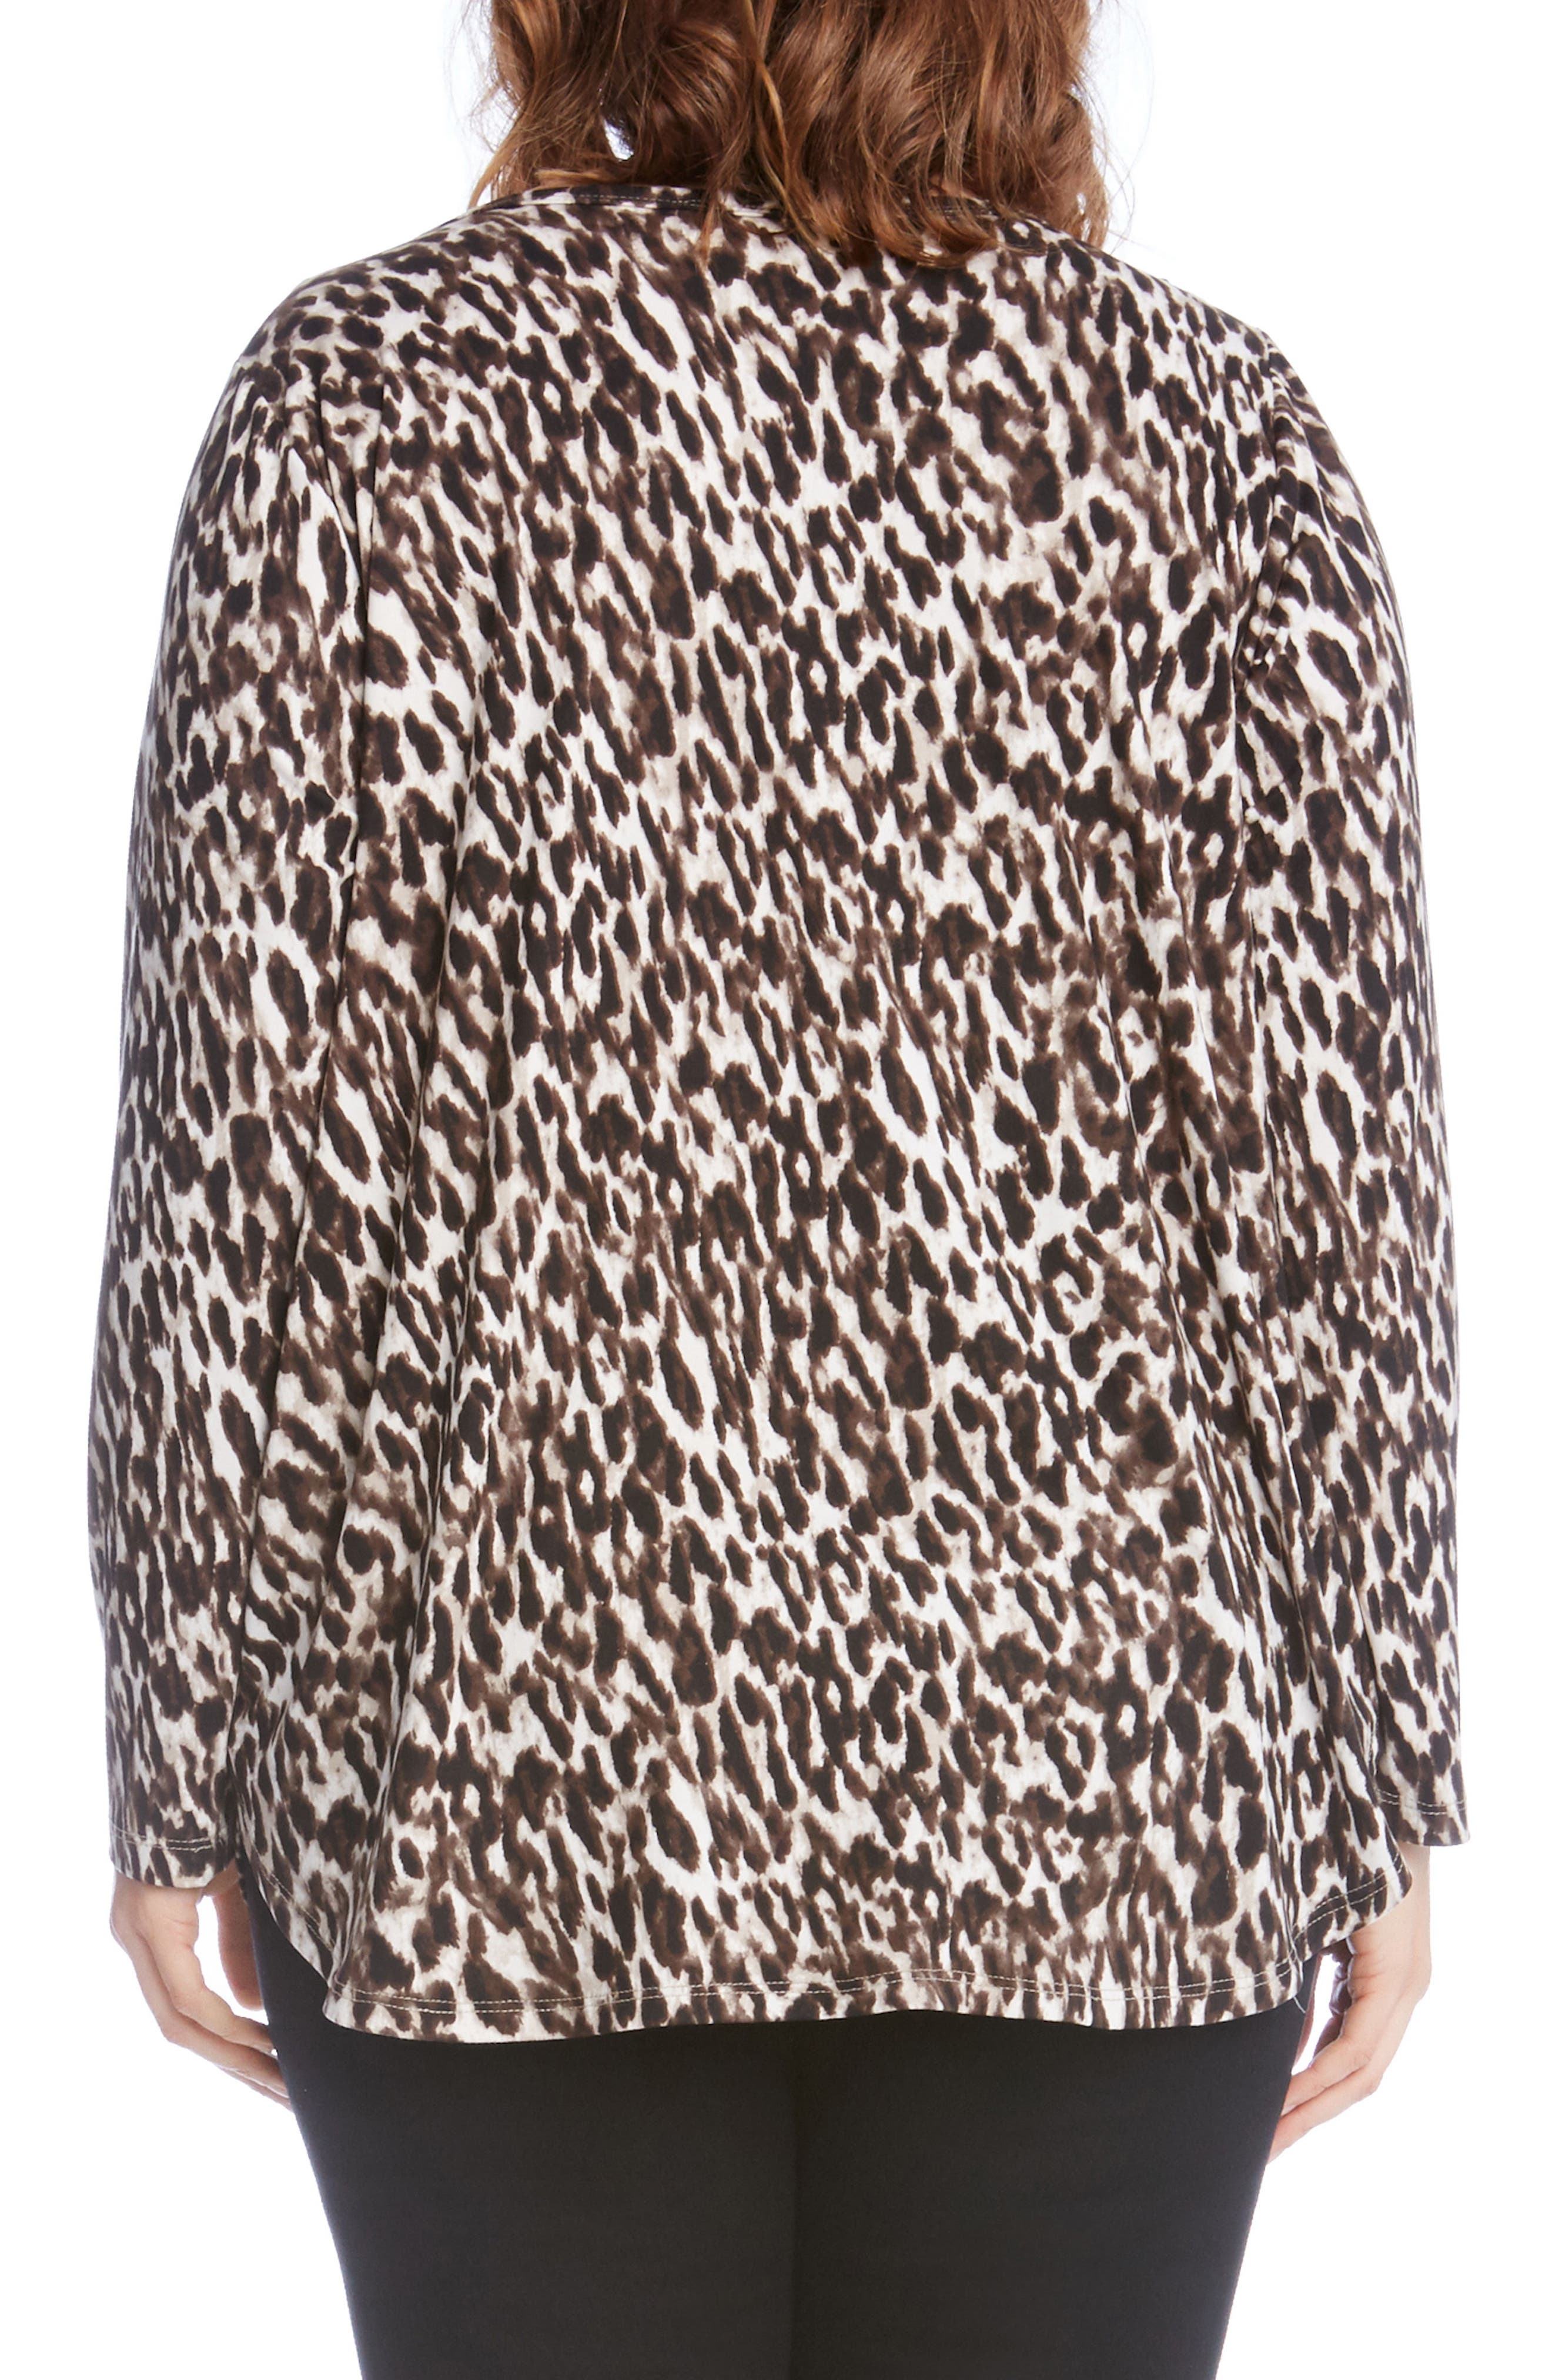 Alternate Image 3  - Karen Kane Print Knit Shirttail Top (Plus Size)